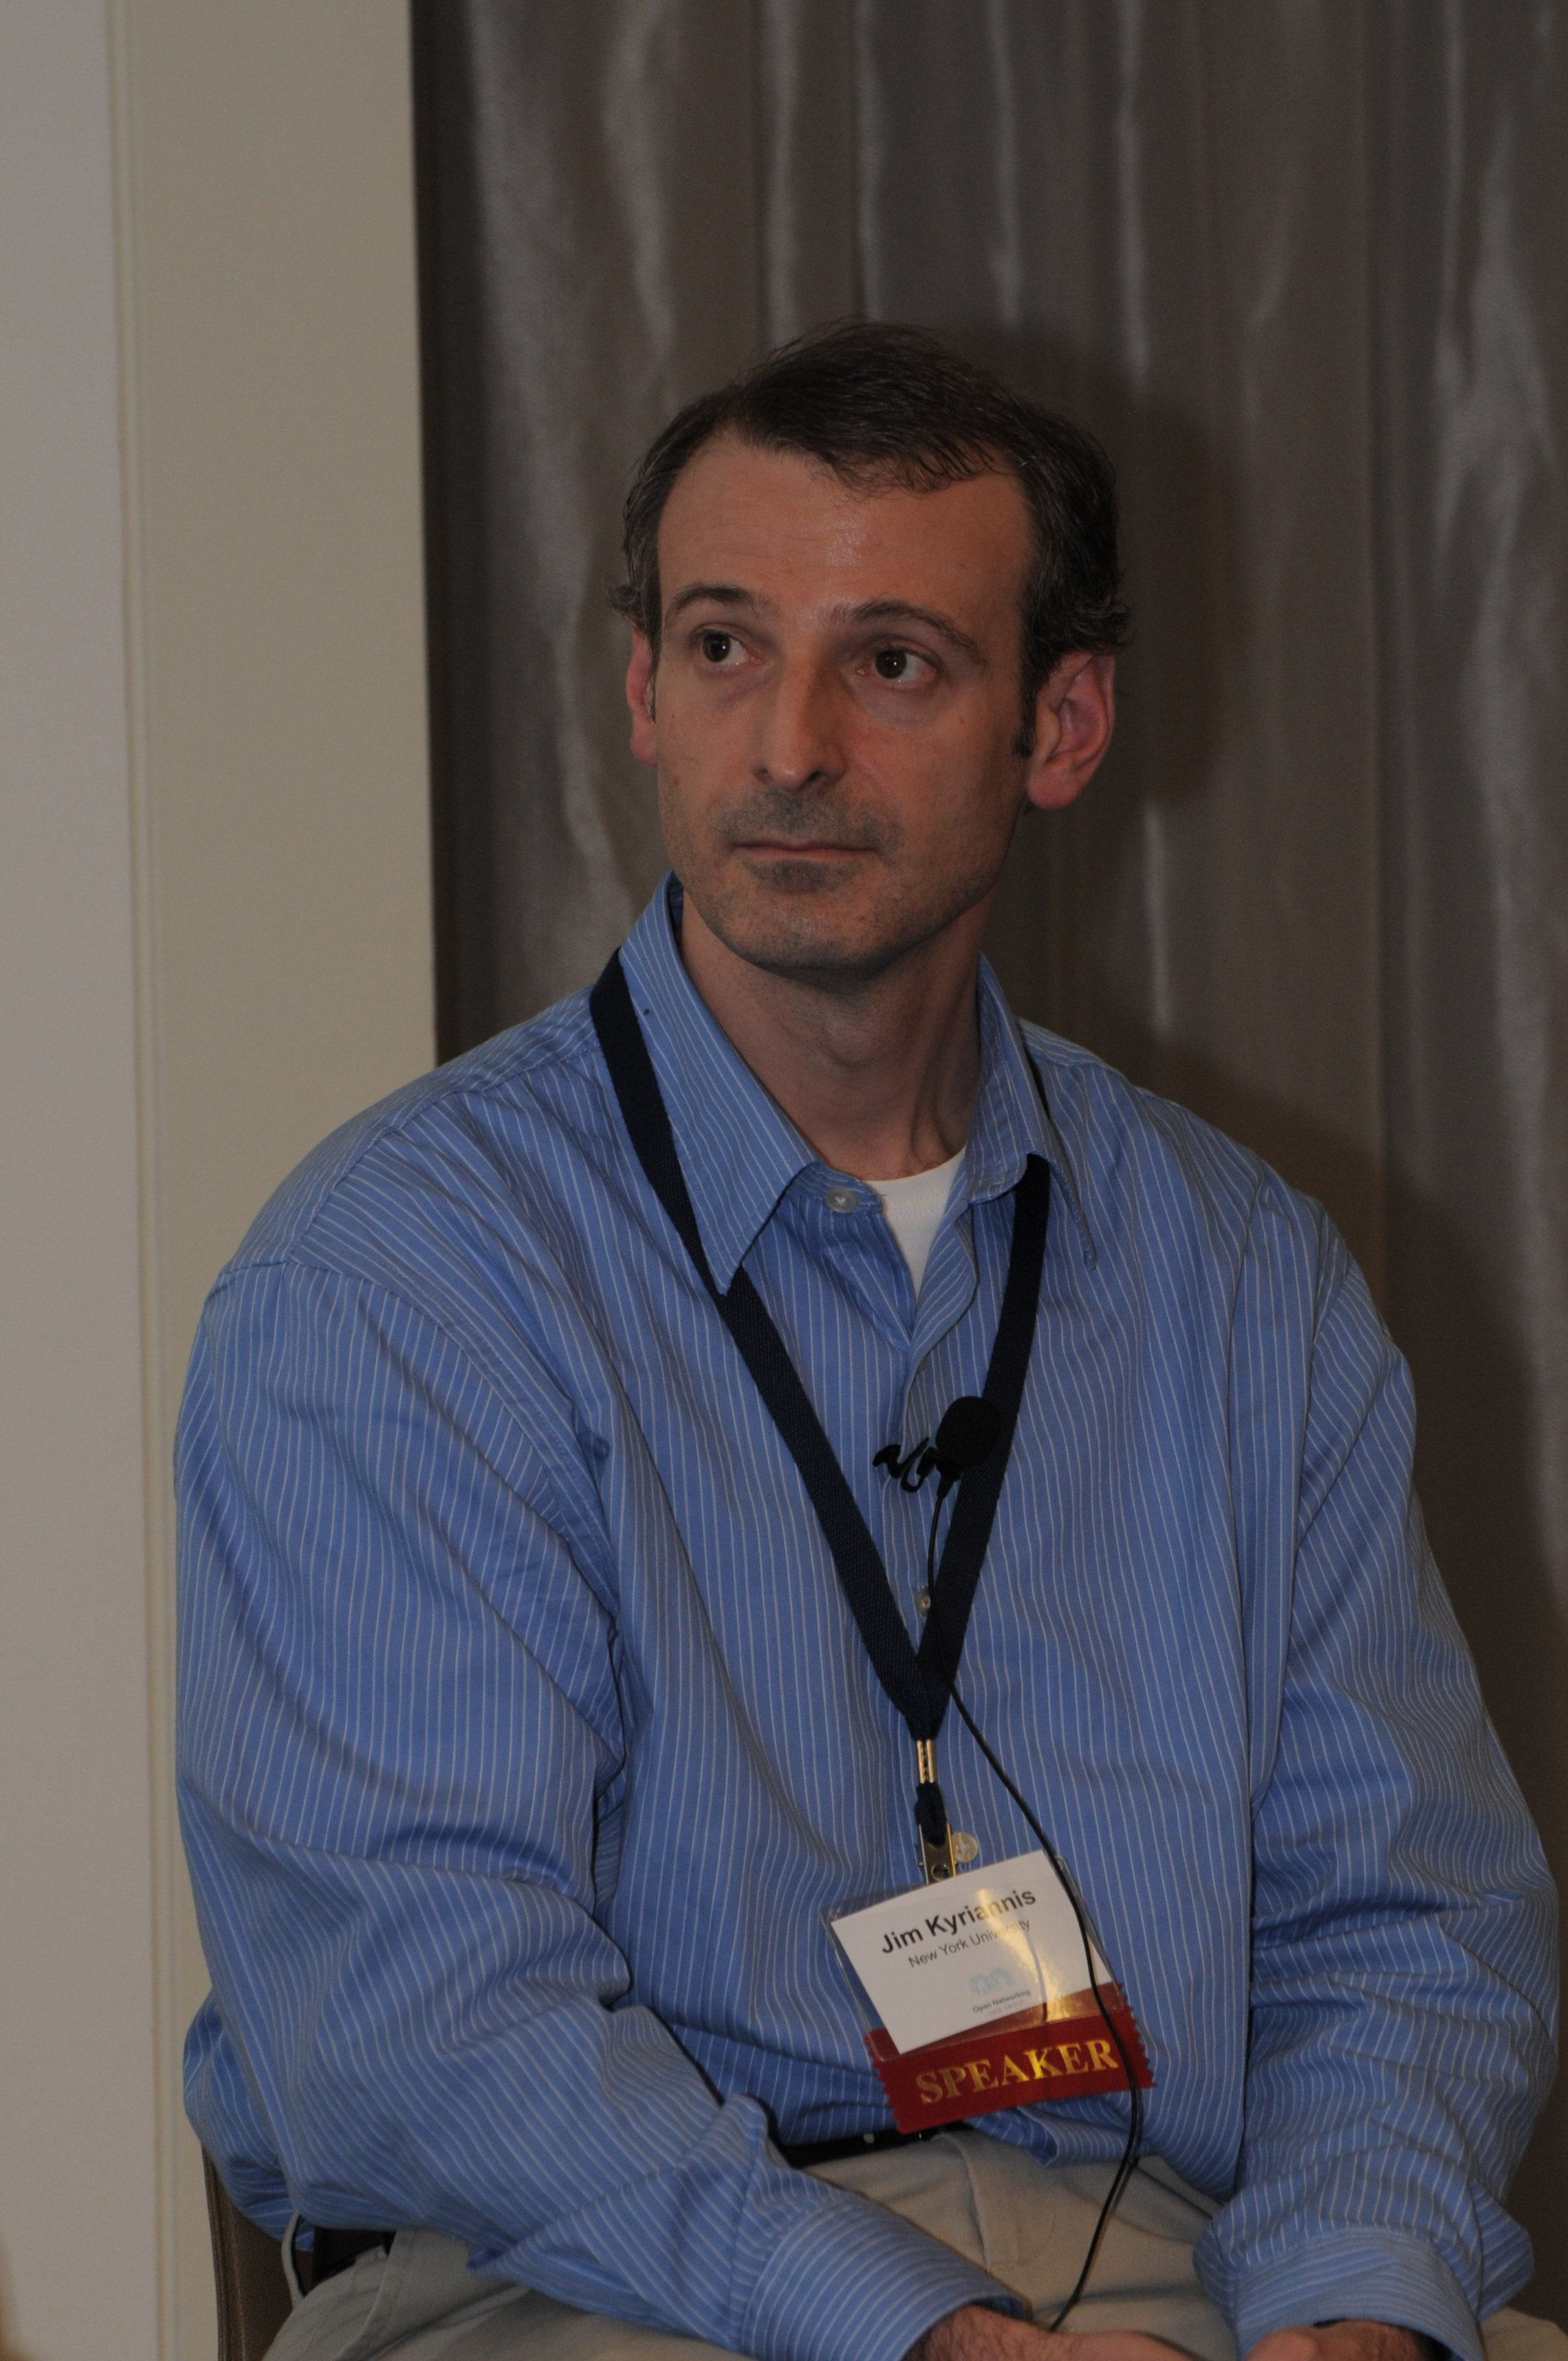 Jim Kyriannis, NYU, addresses the crowd during the SDN in University Environments panel